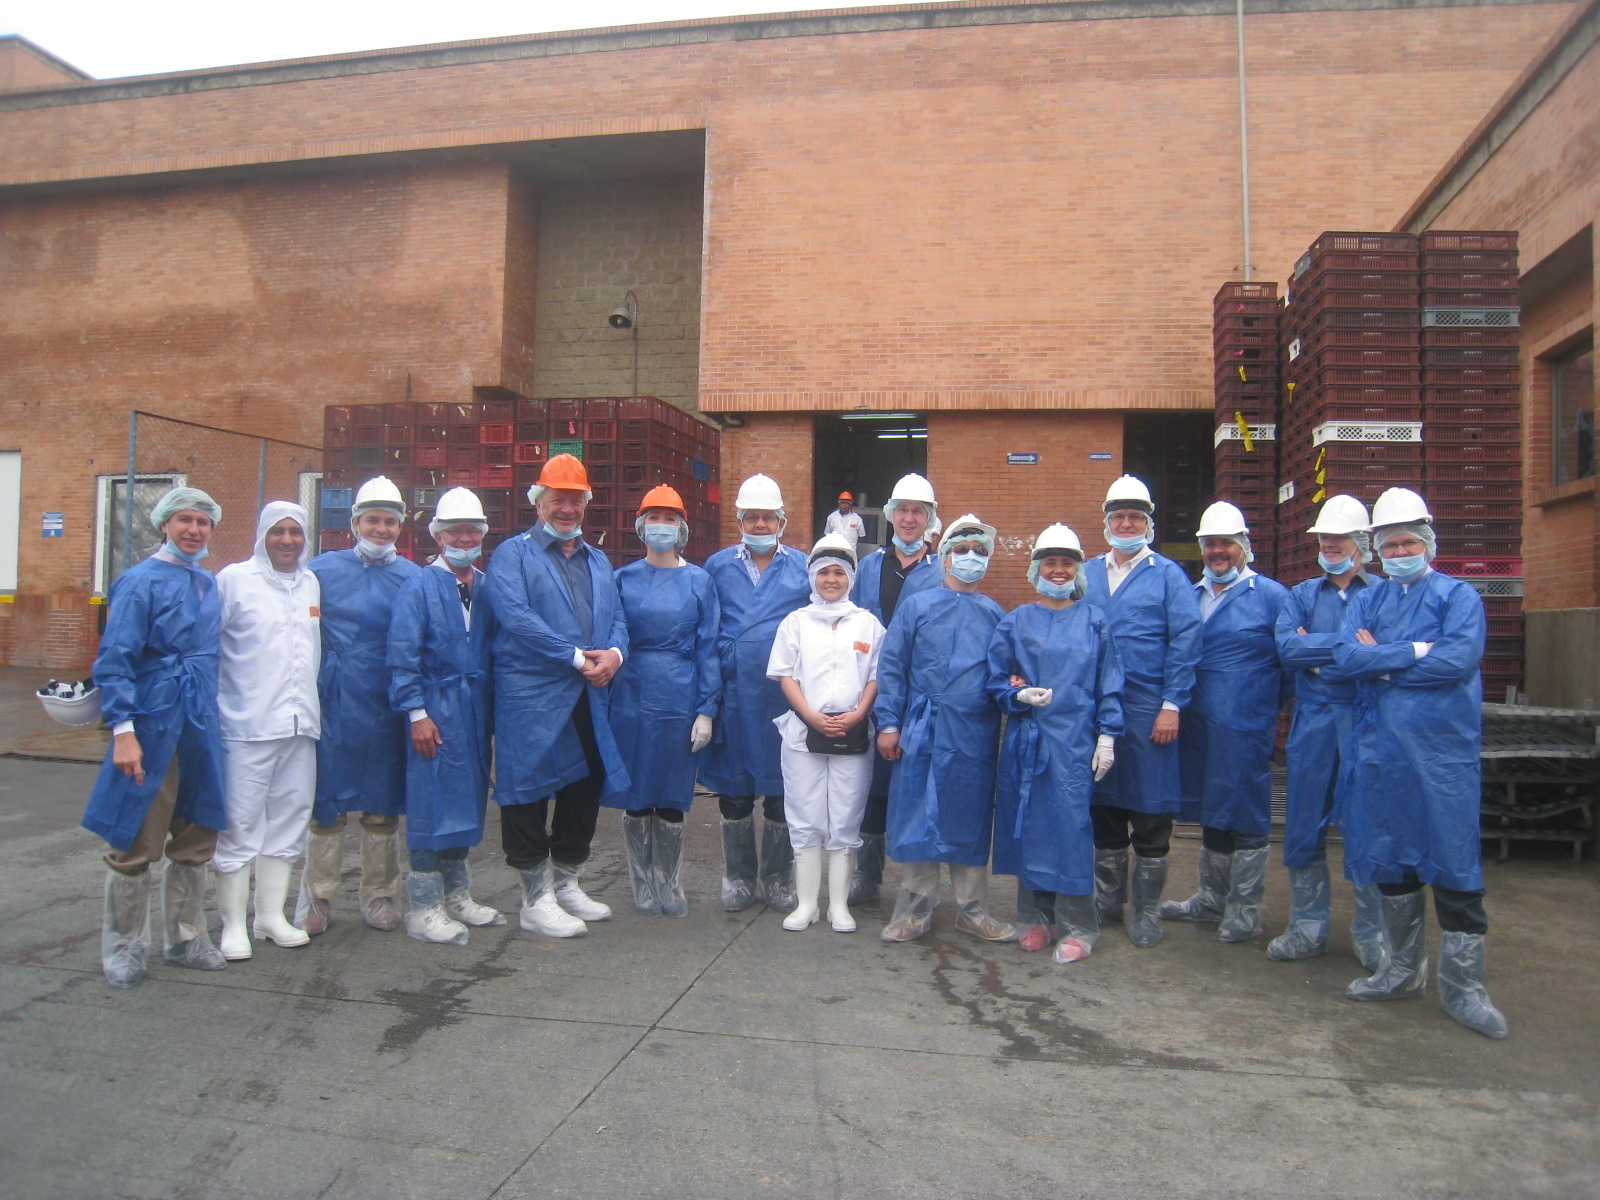 Preparing to tour a production facility